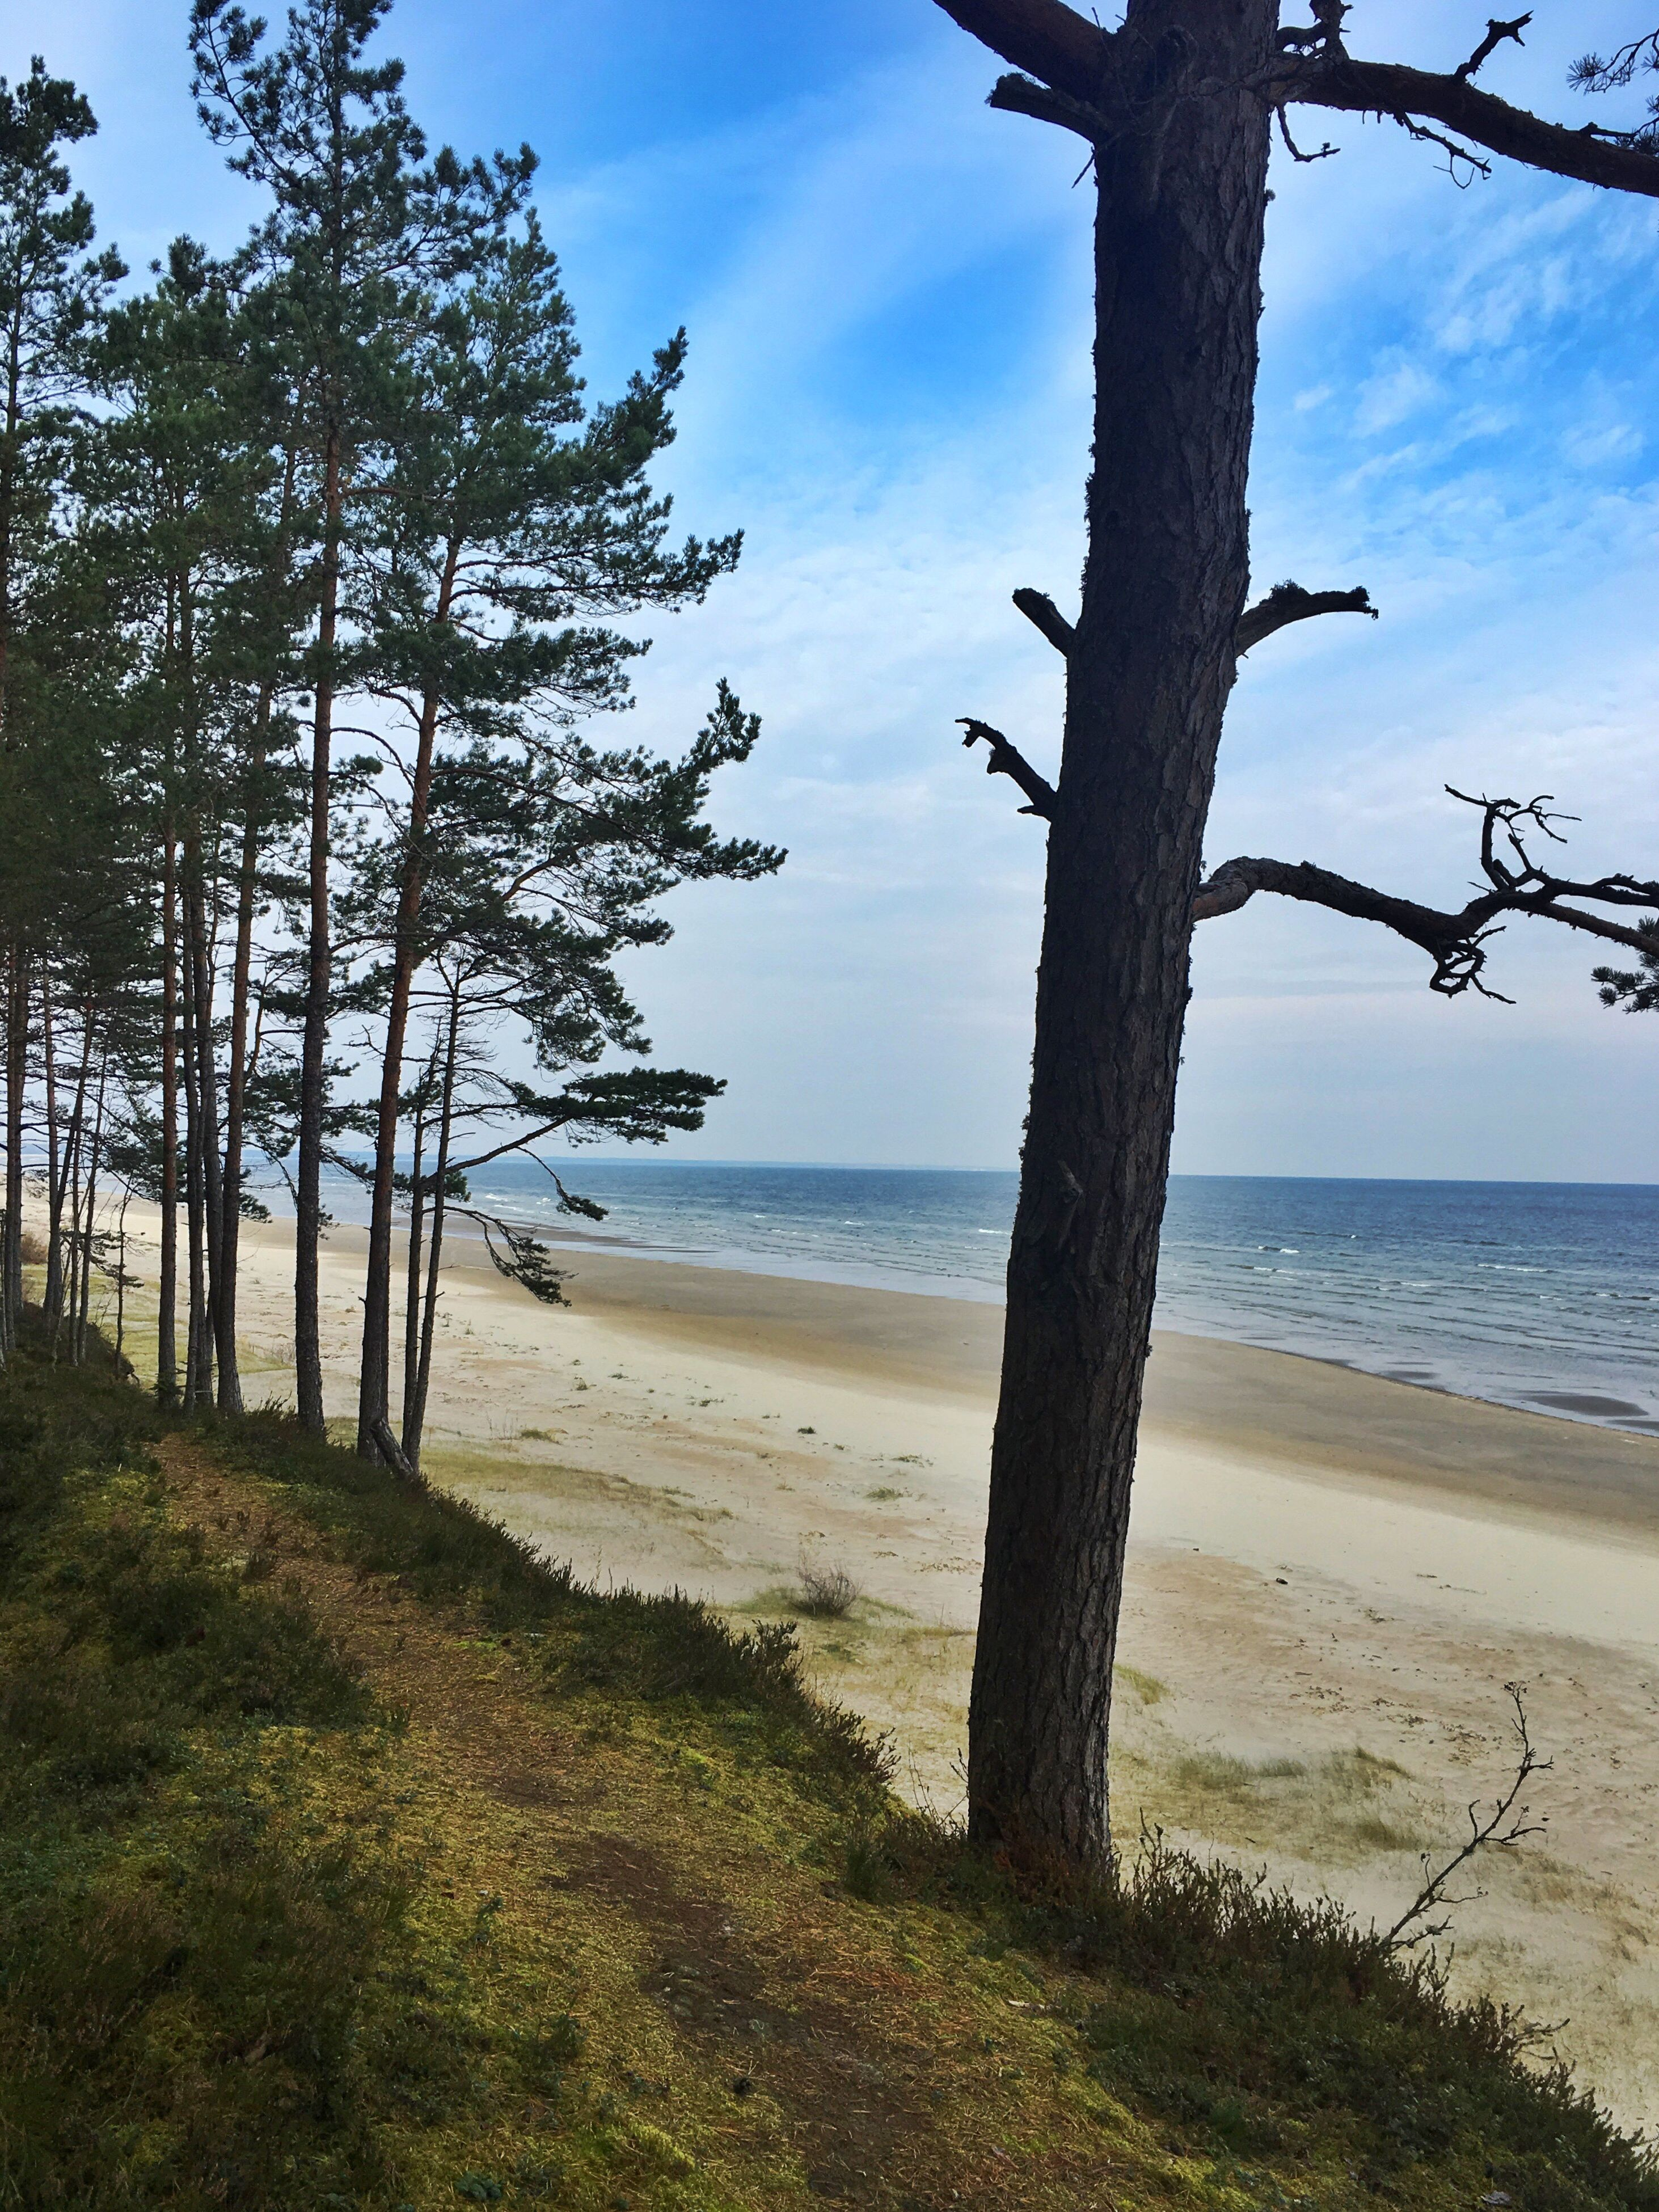 tree, sea, beach, nature, sky, horizon over water, water, beauty in nature, sand, scenics, tranquility, tree trunk, outdoors, growth, no people, day